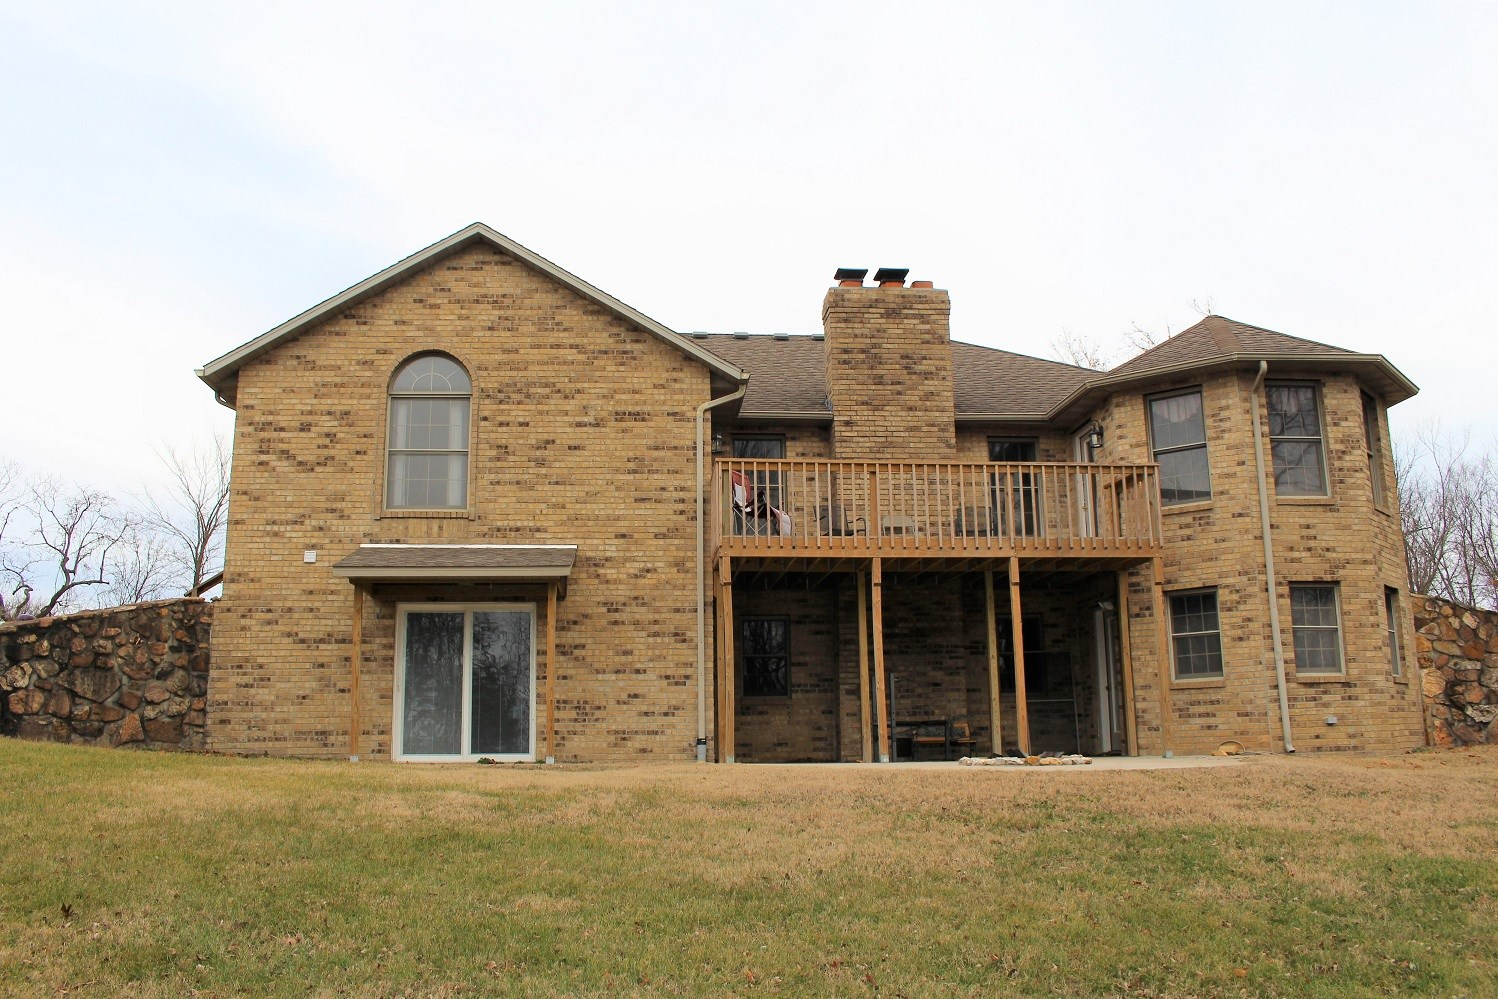 For Sale Southern Missouri Brick Home with Basement